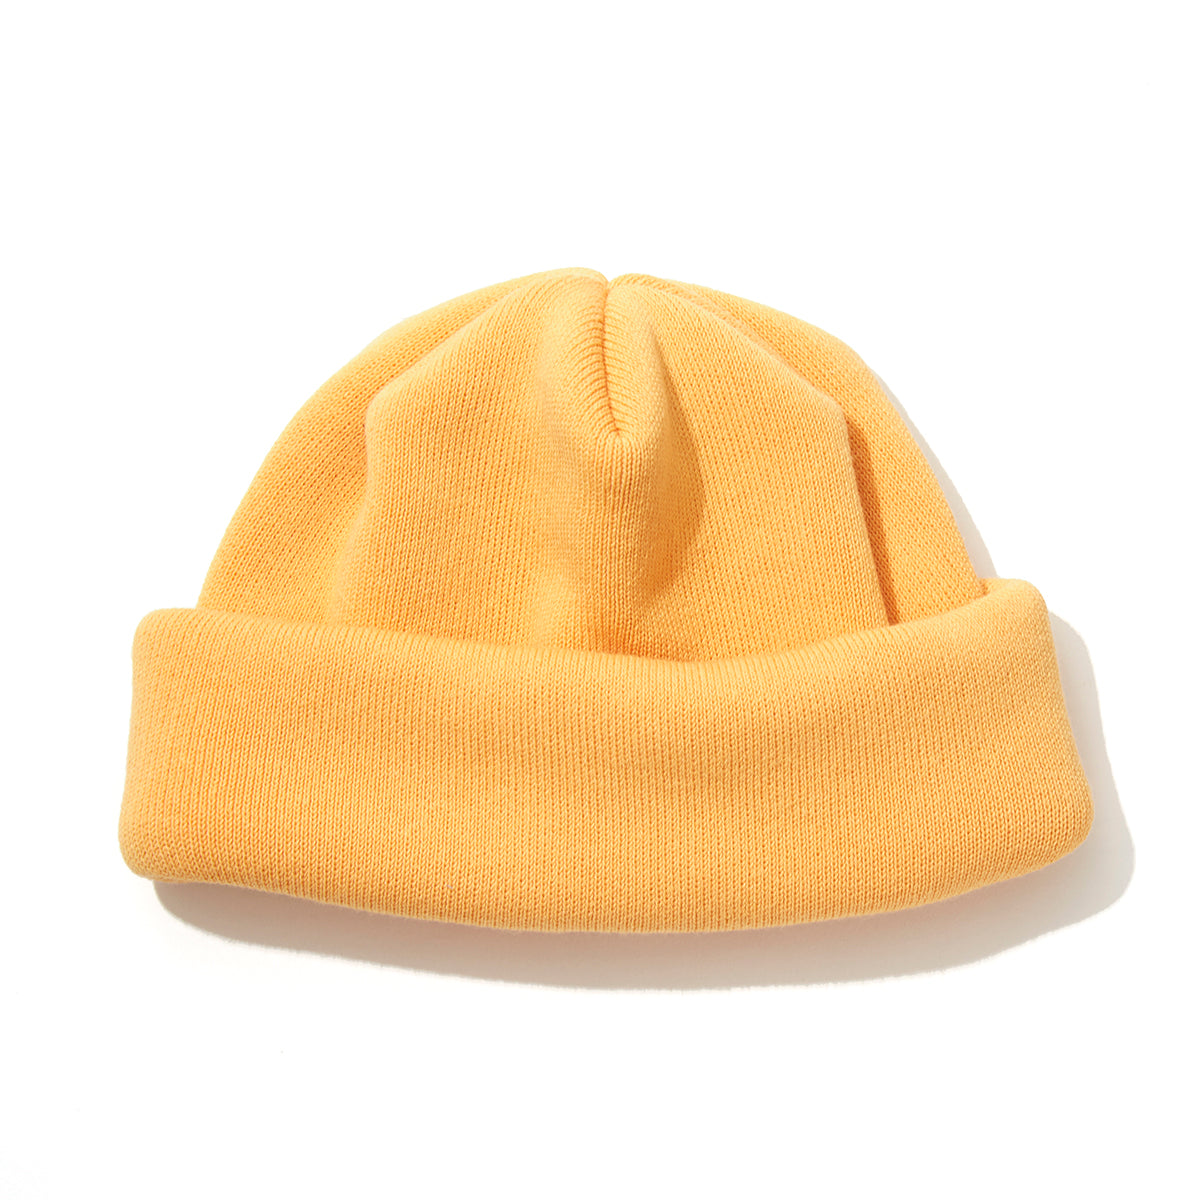 Knit Cap / YELLOW